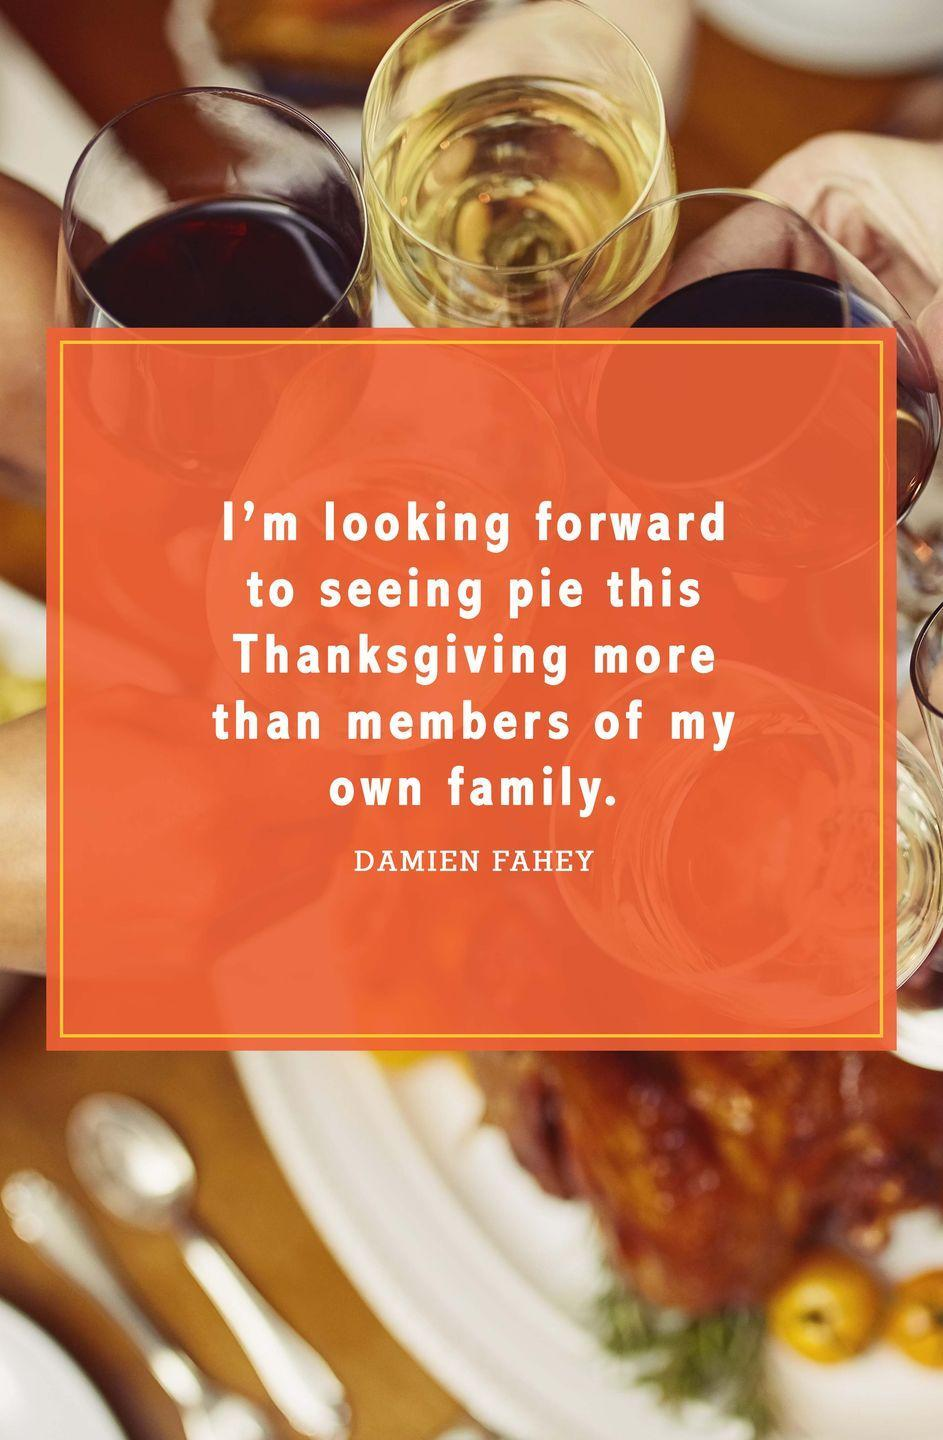 "<p>""I'm looking forward to seeing pie this Thanksgiving more than members of my own family.""</p>"